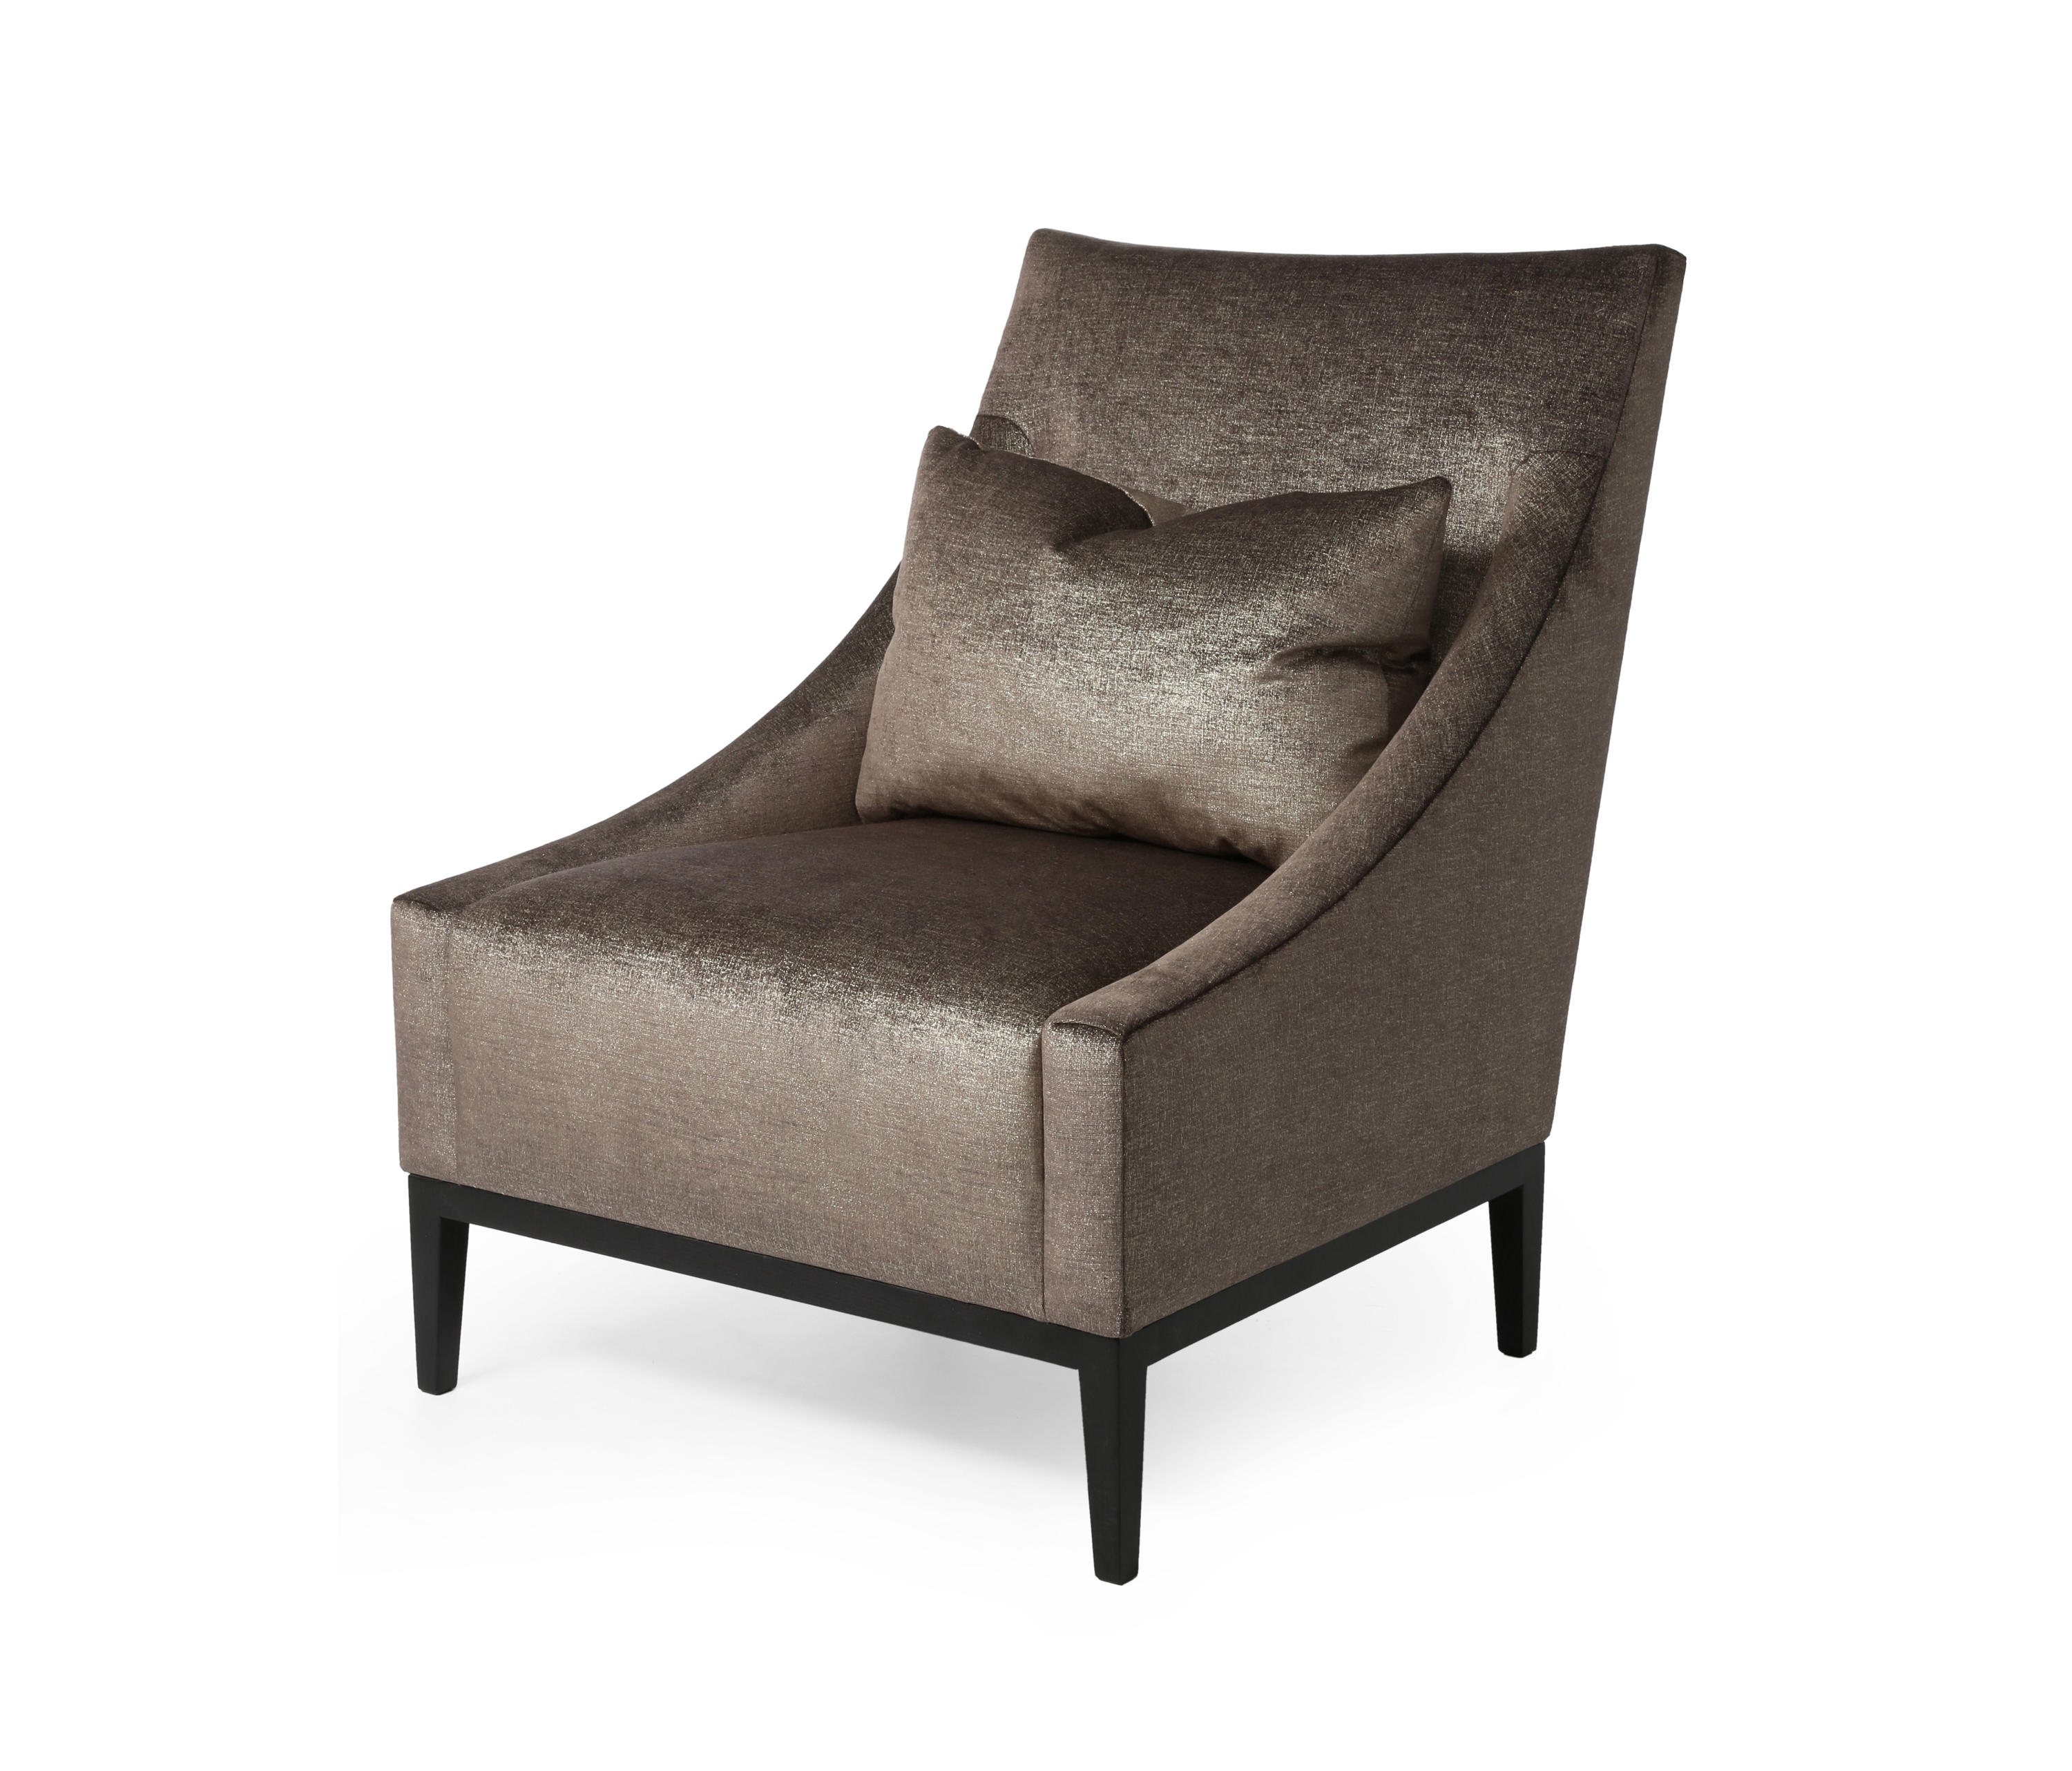 Valera occasional chair by The Sofa & Chair Company Ltd | Armchairs